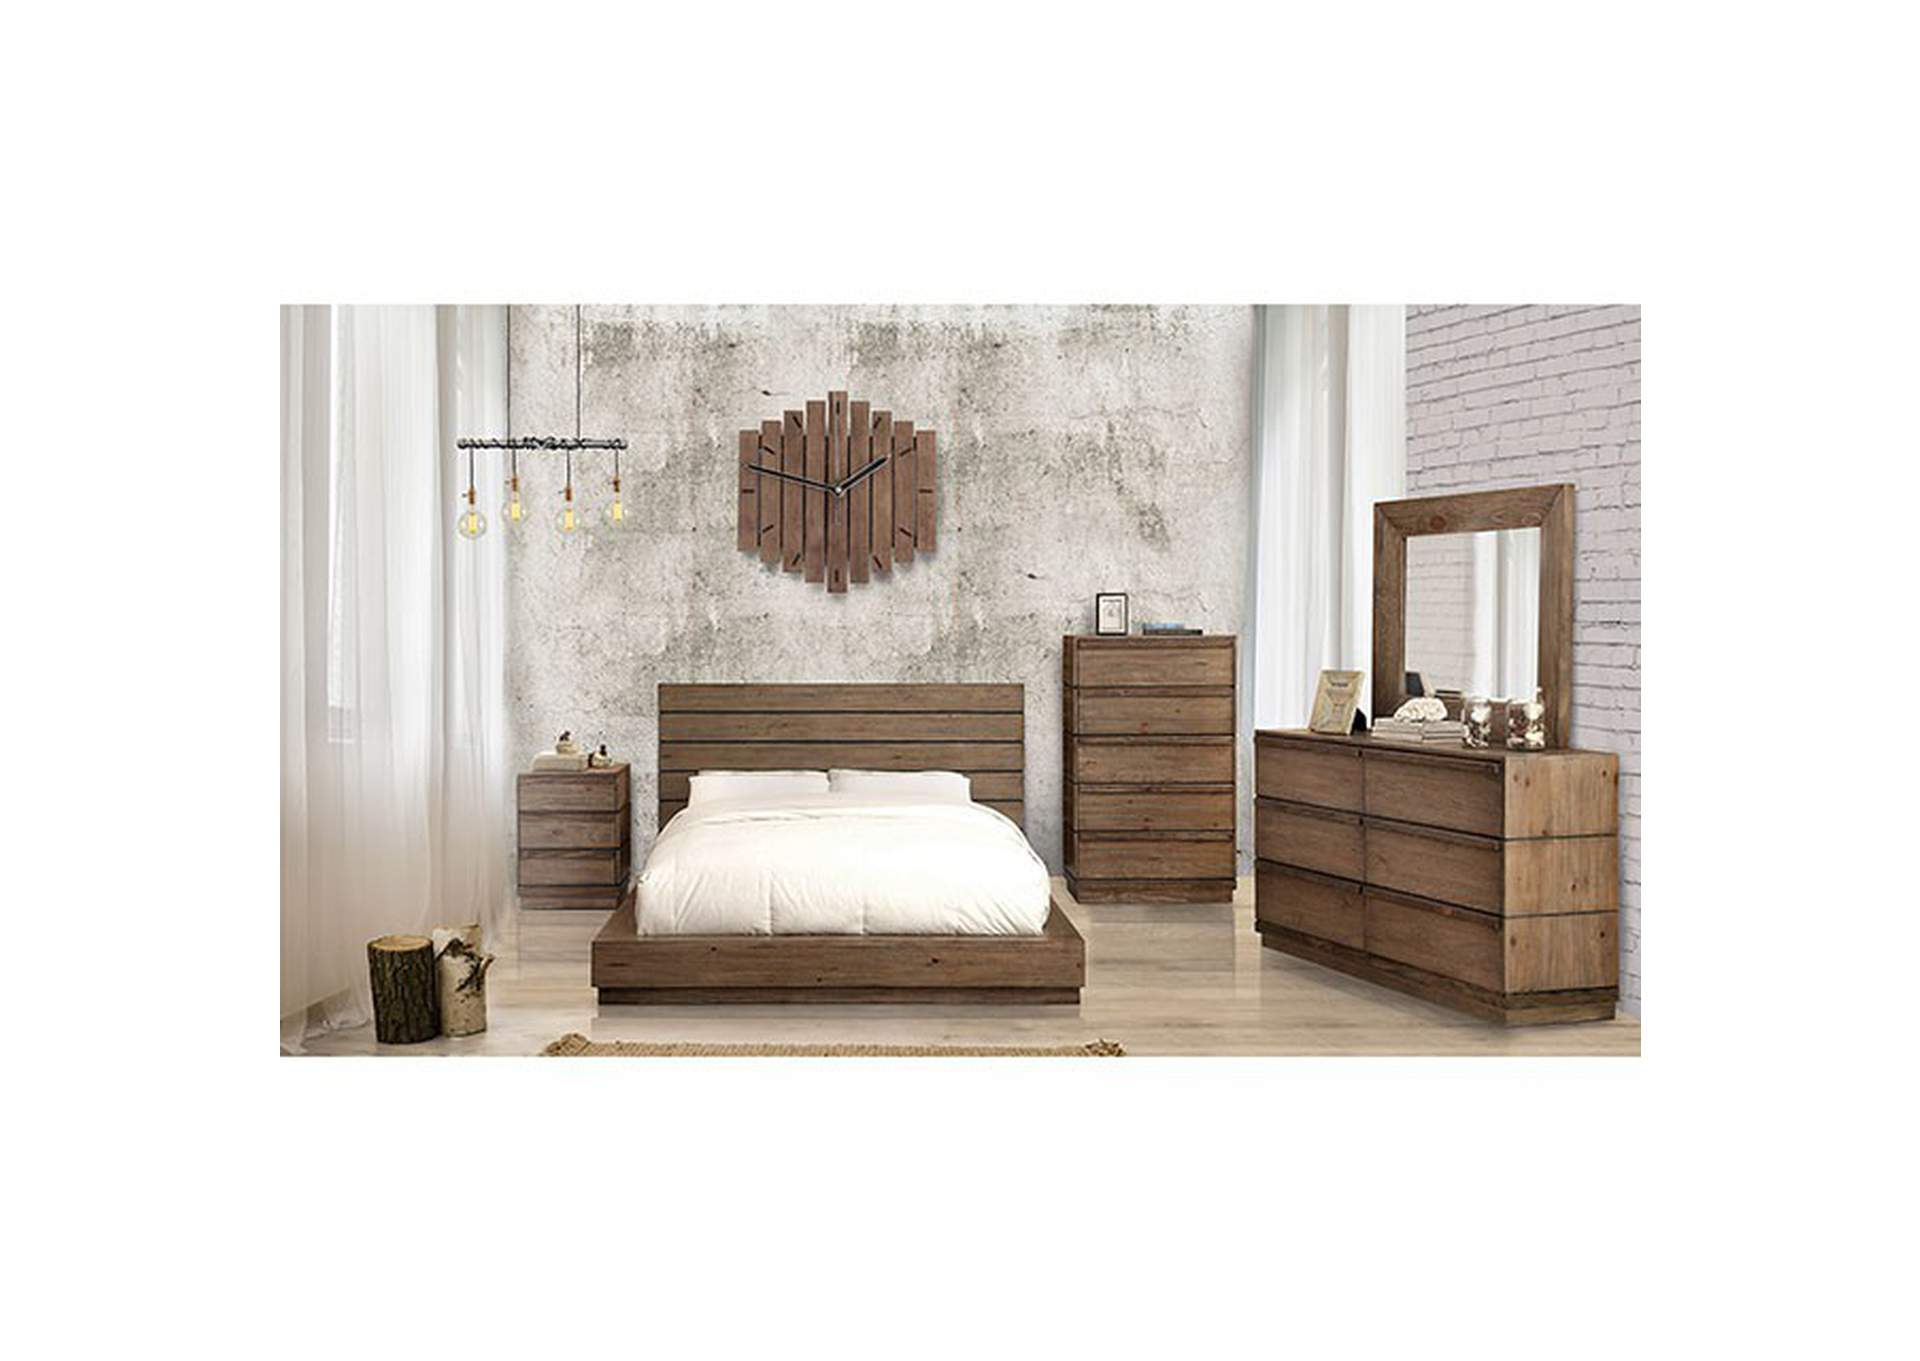 Coimbra Rustic Natural Tone Queen Bed,Furniture of America